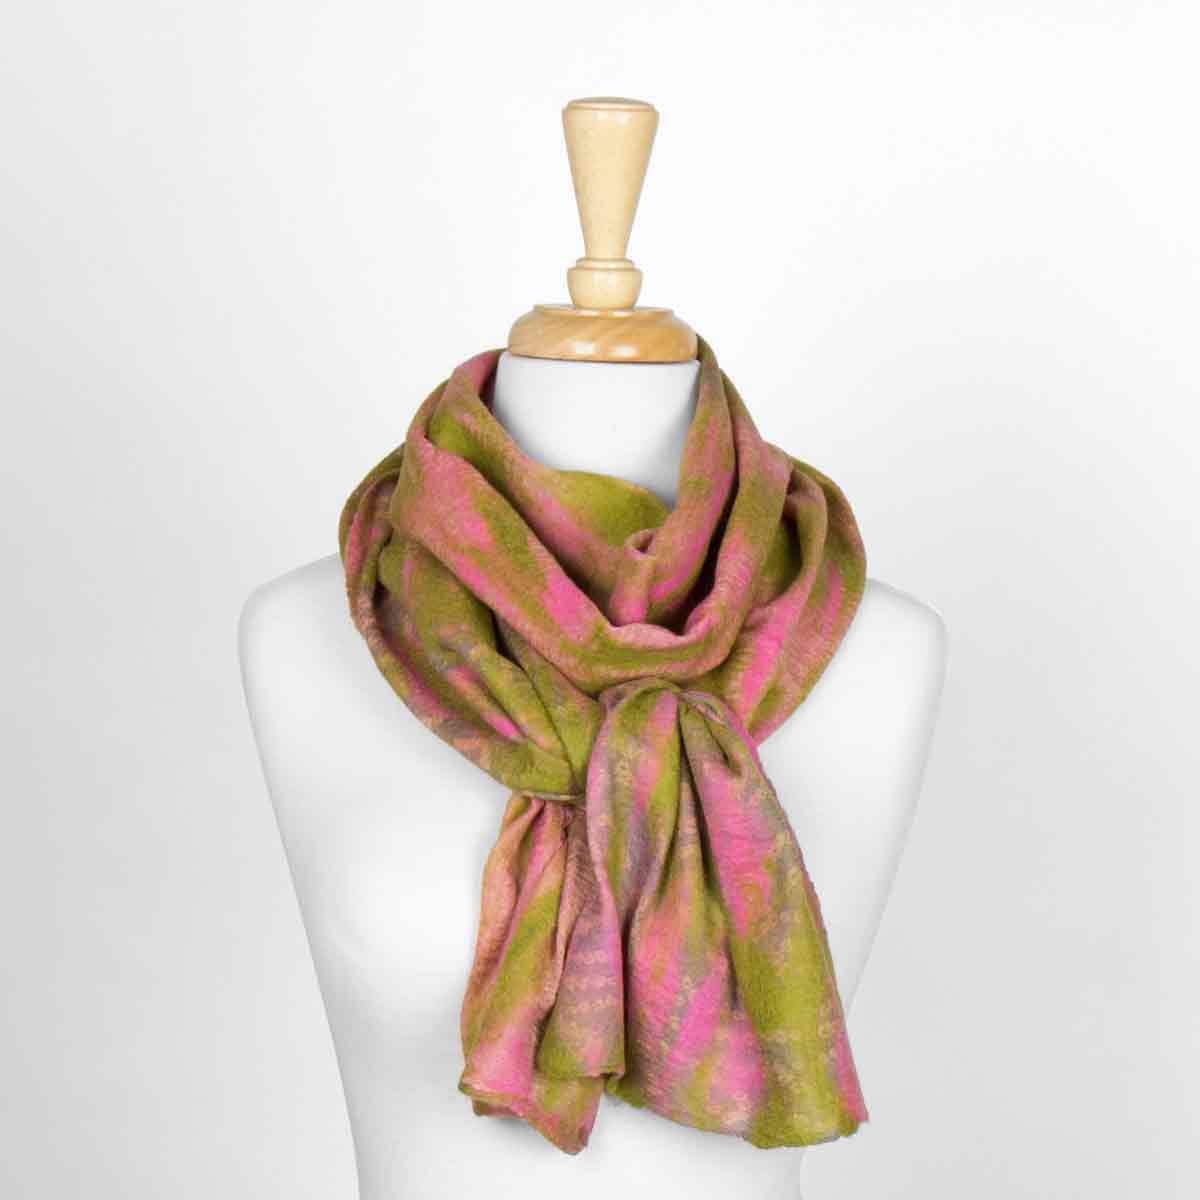 ACCESSORIES - Scarves Pink Memories gPoXl